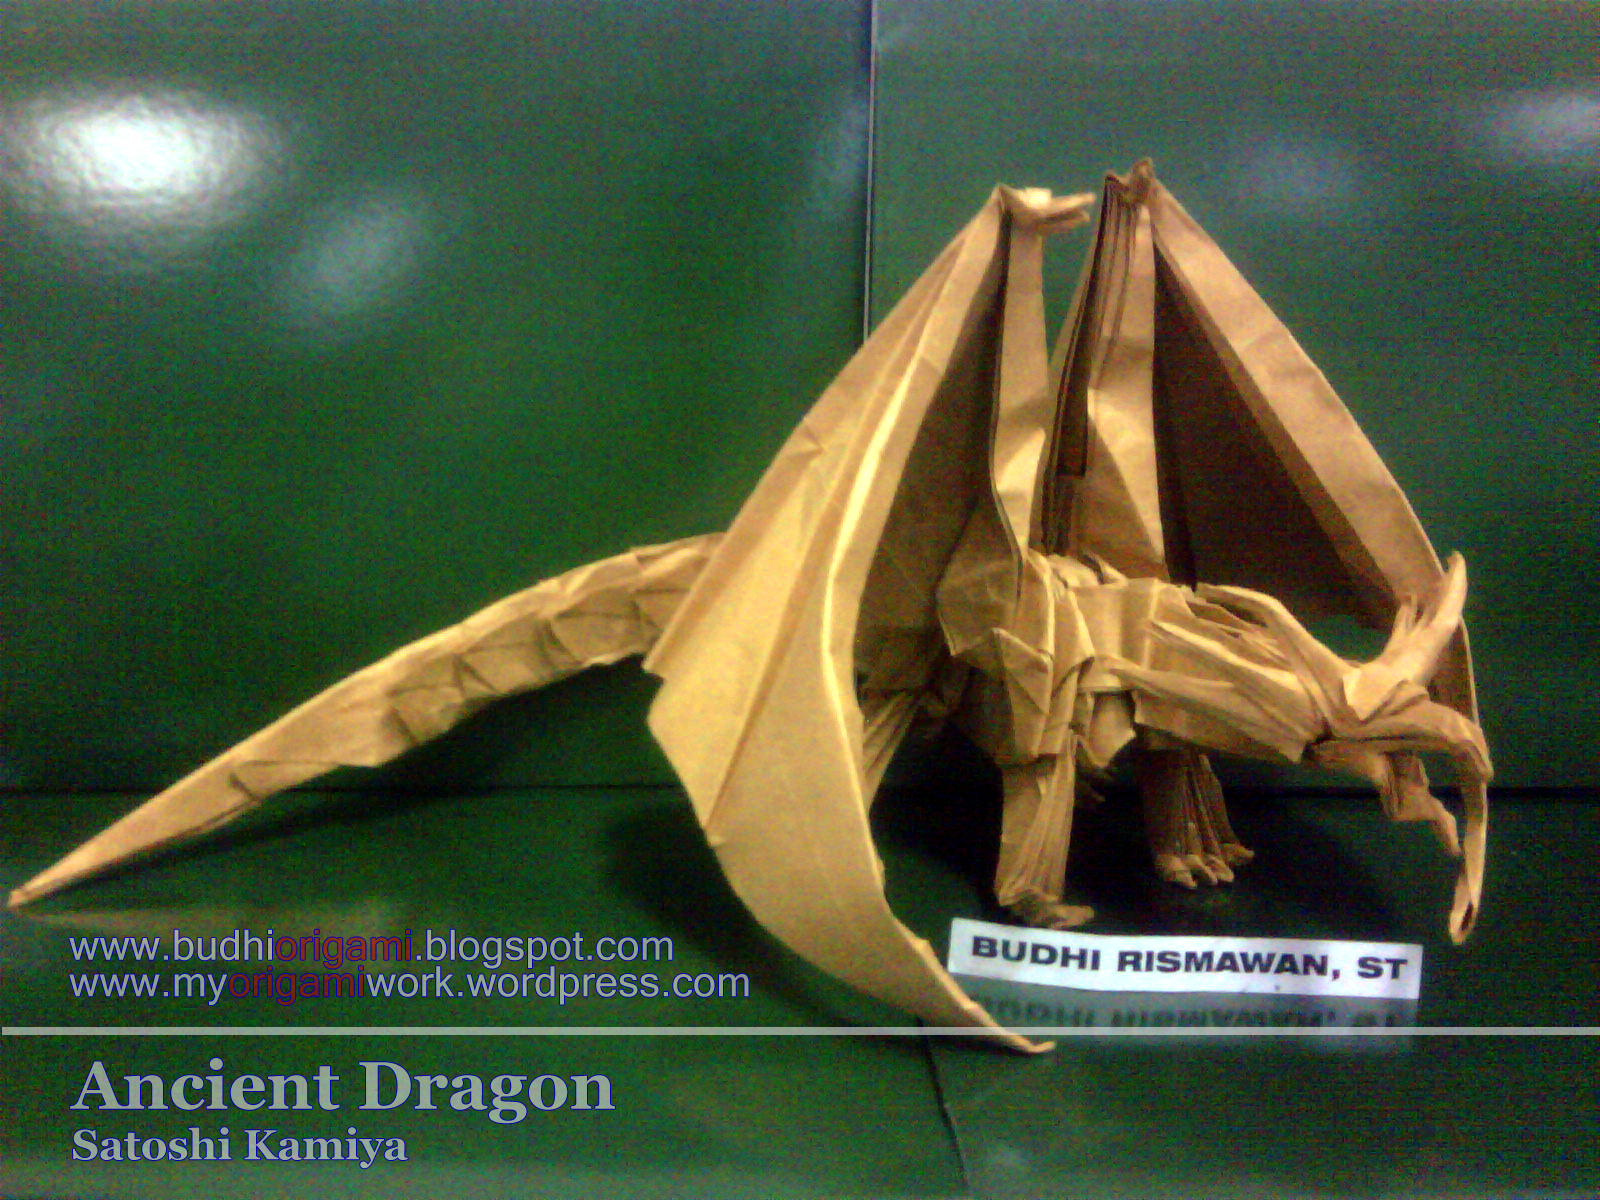 satoshi kamiya diagram of the formation a waterfall ancient dragon  myorigamiwork